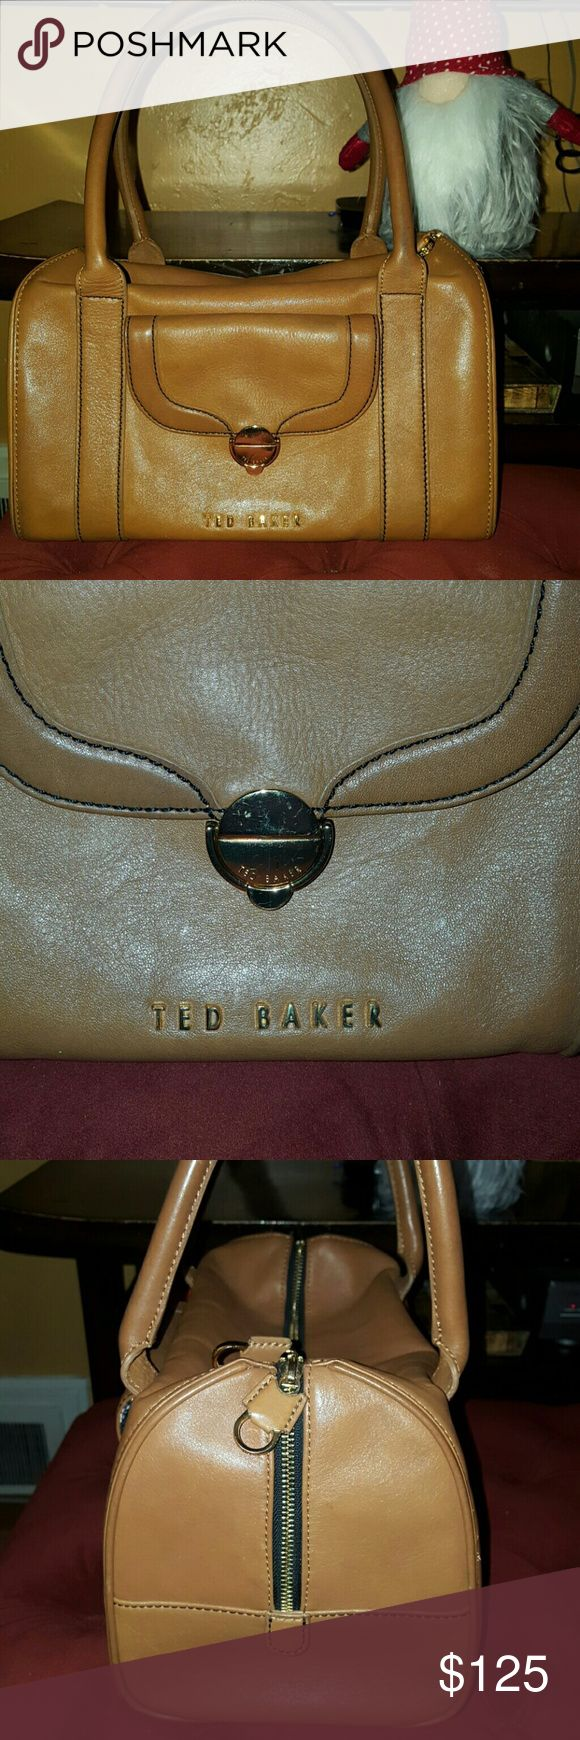 Camel Ted Baker Leather Handbag Satchel Gorgeous handbag from Ted Baker of London. Preloved condition. Some minor scratches. Some scratches on gold hardware. Handles are a bit darker from use. Inside has signature bulldog lining. No stains or spots. Whole bag has been professionally cleaned inside and out. Smoke free, pet free home. Ted Baker Bags